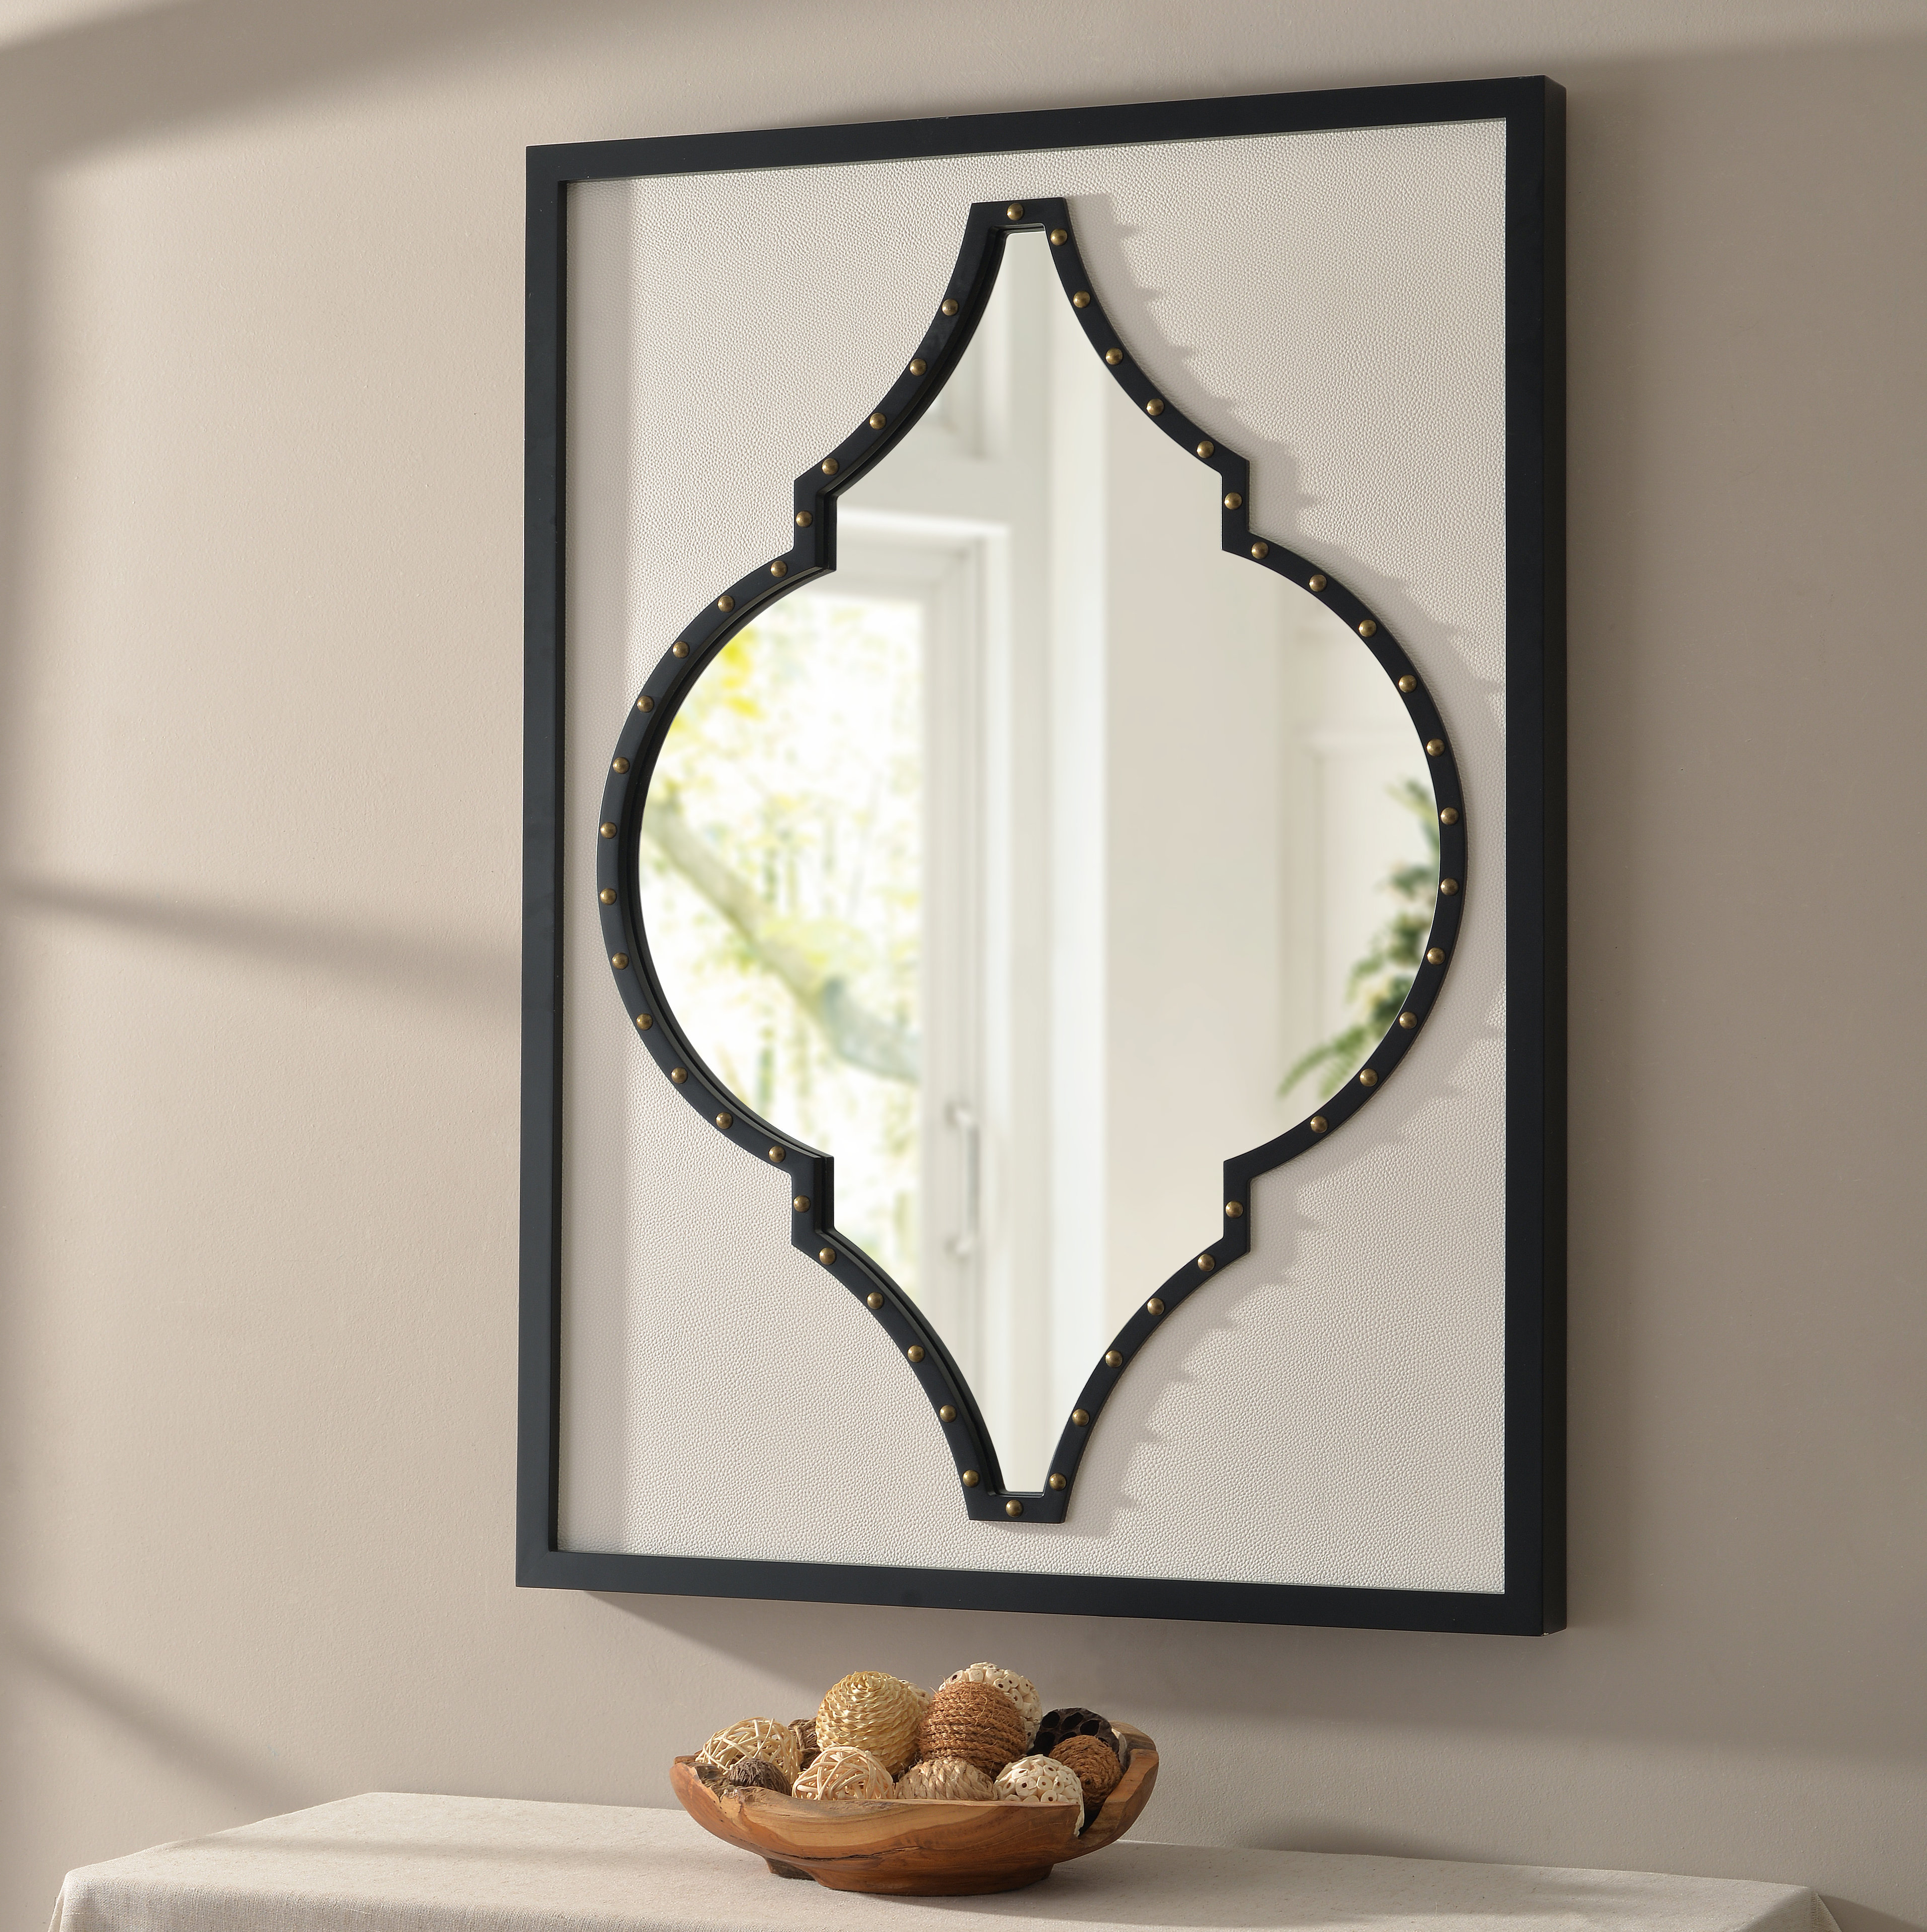 Woll Accent Mirror Intended For Most Up To Date Polito Cottage/country Wall Mirrors (View 3 of 20)